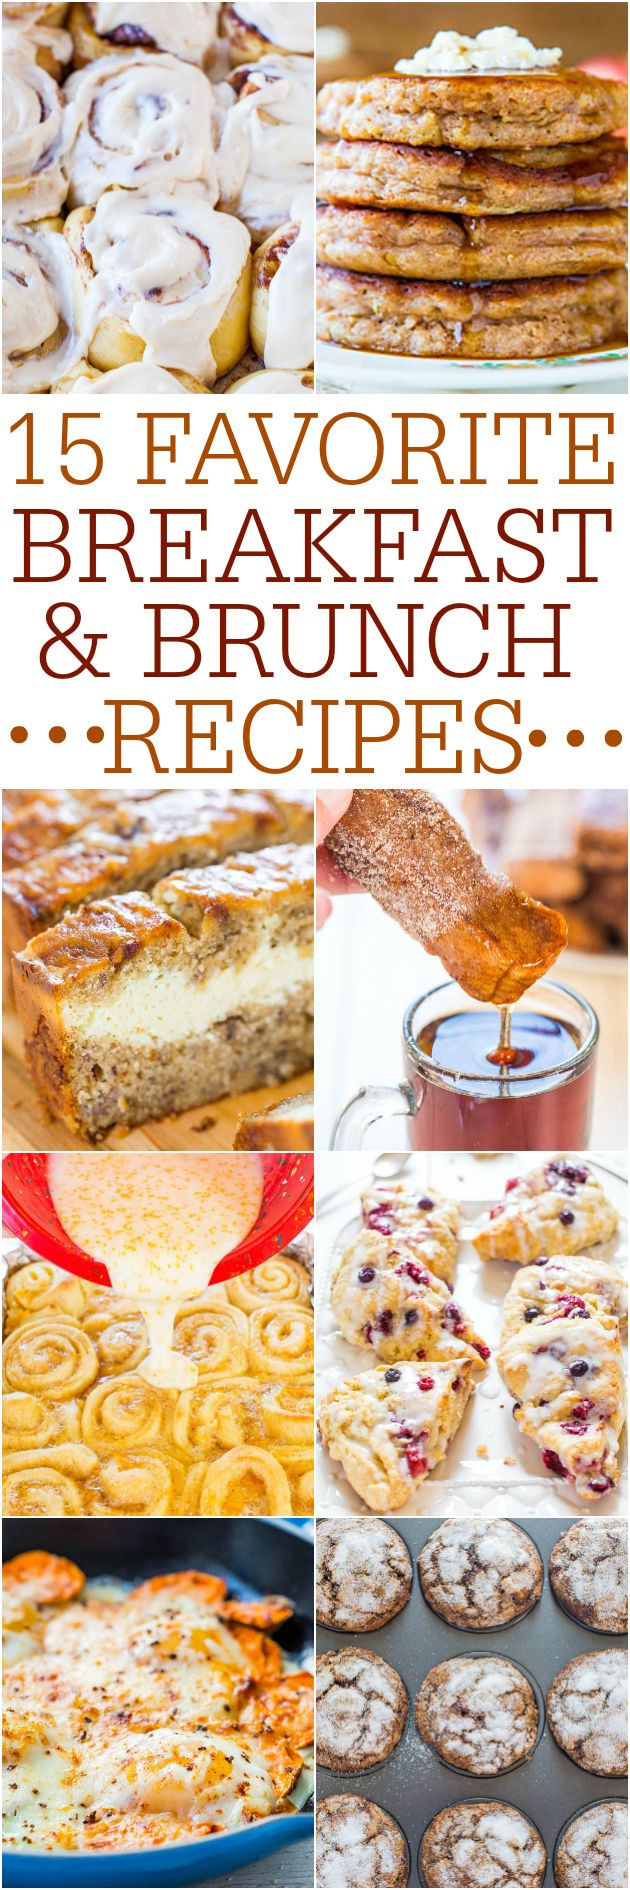 15 Favorite Breakfast and Brunch Recipes - Fast and easy tried-and-true recipes that everyone will love!